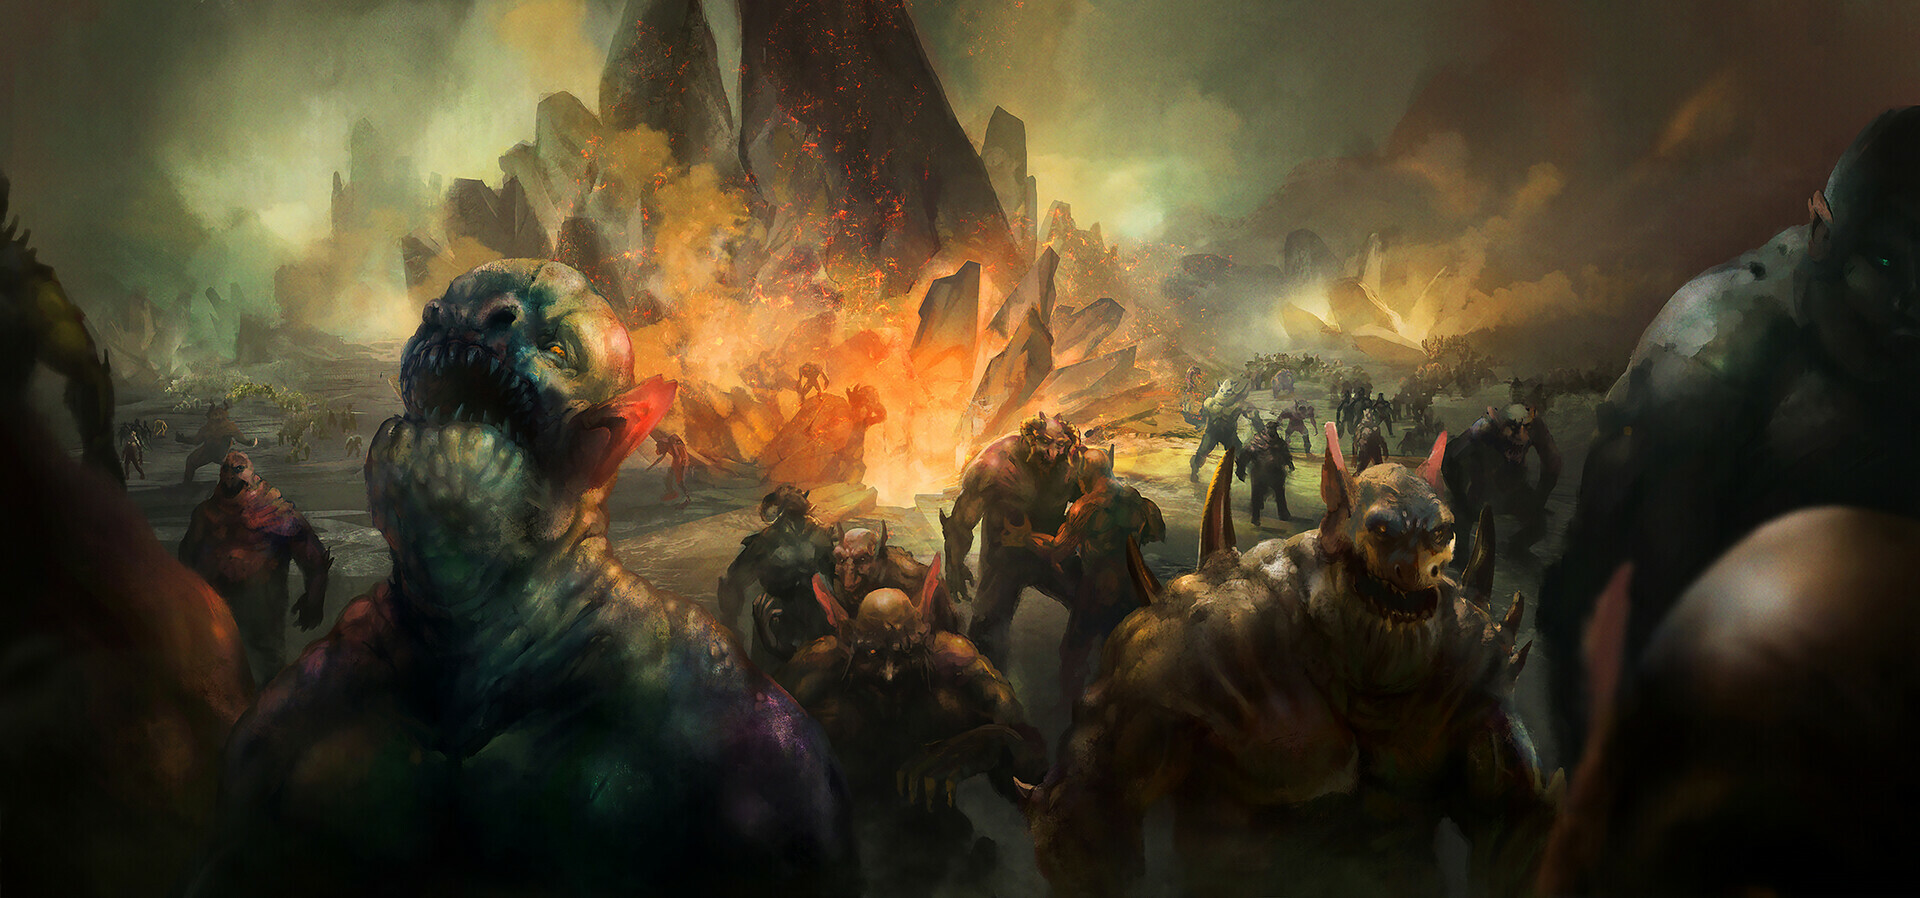 Crumbling World: Monsters Unleashed